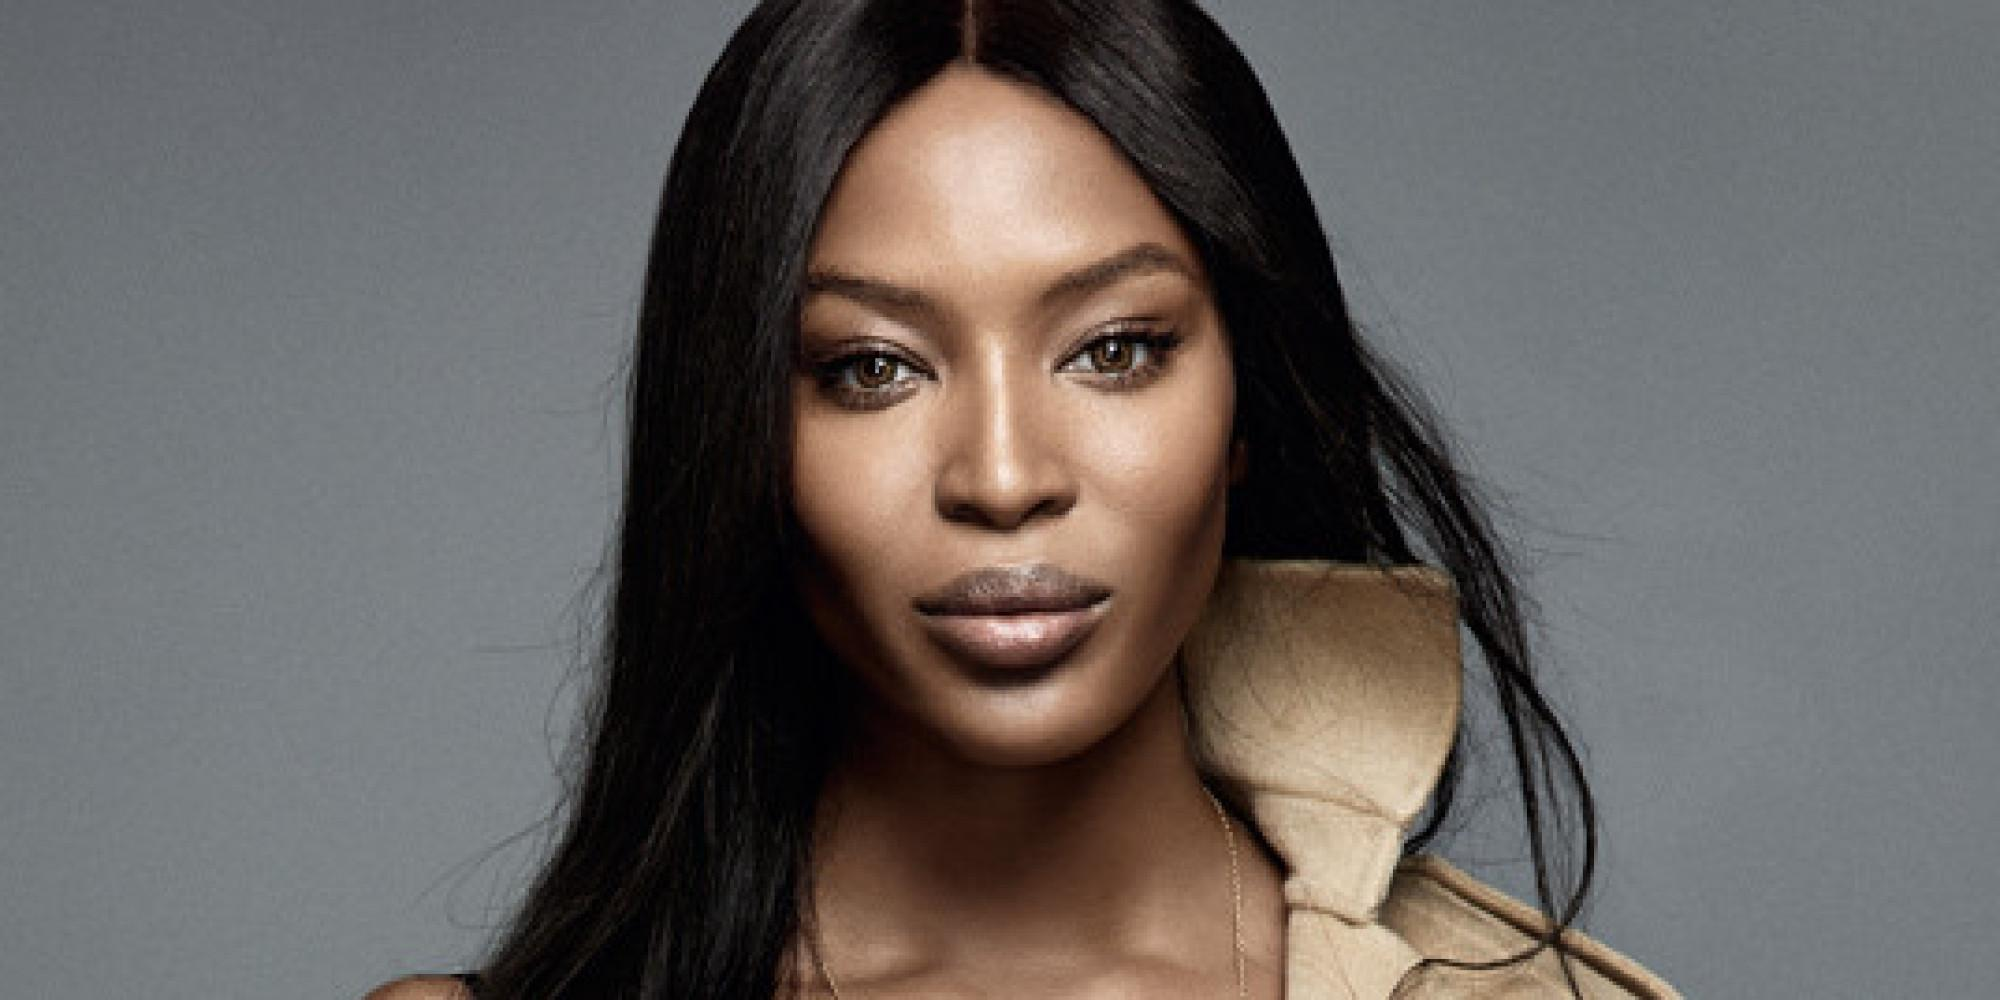 Naomi Campbell Wallpapers High Resolution and Quality Download